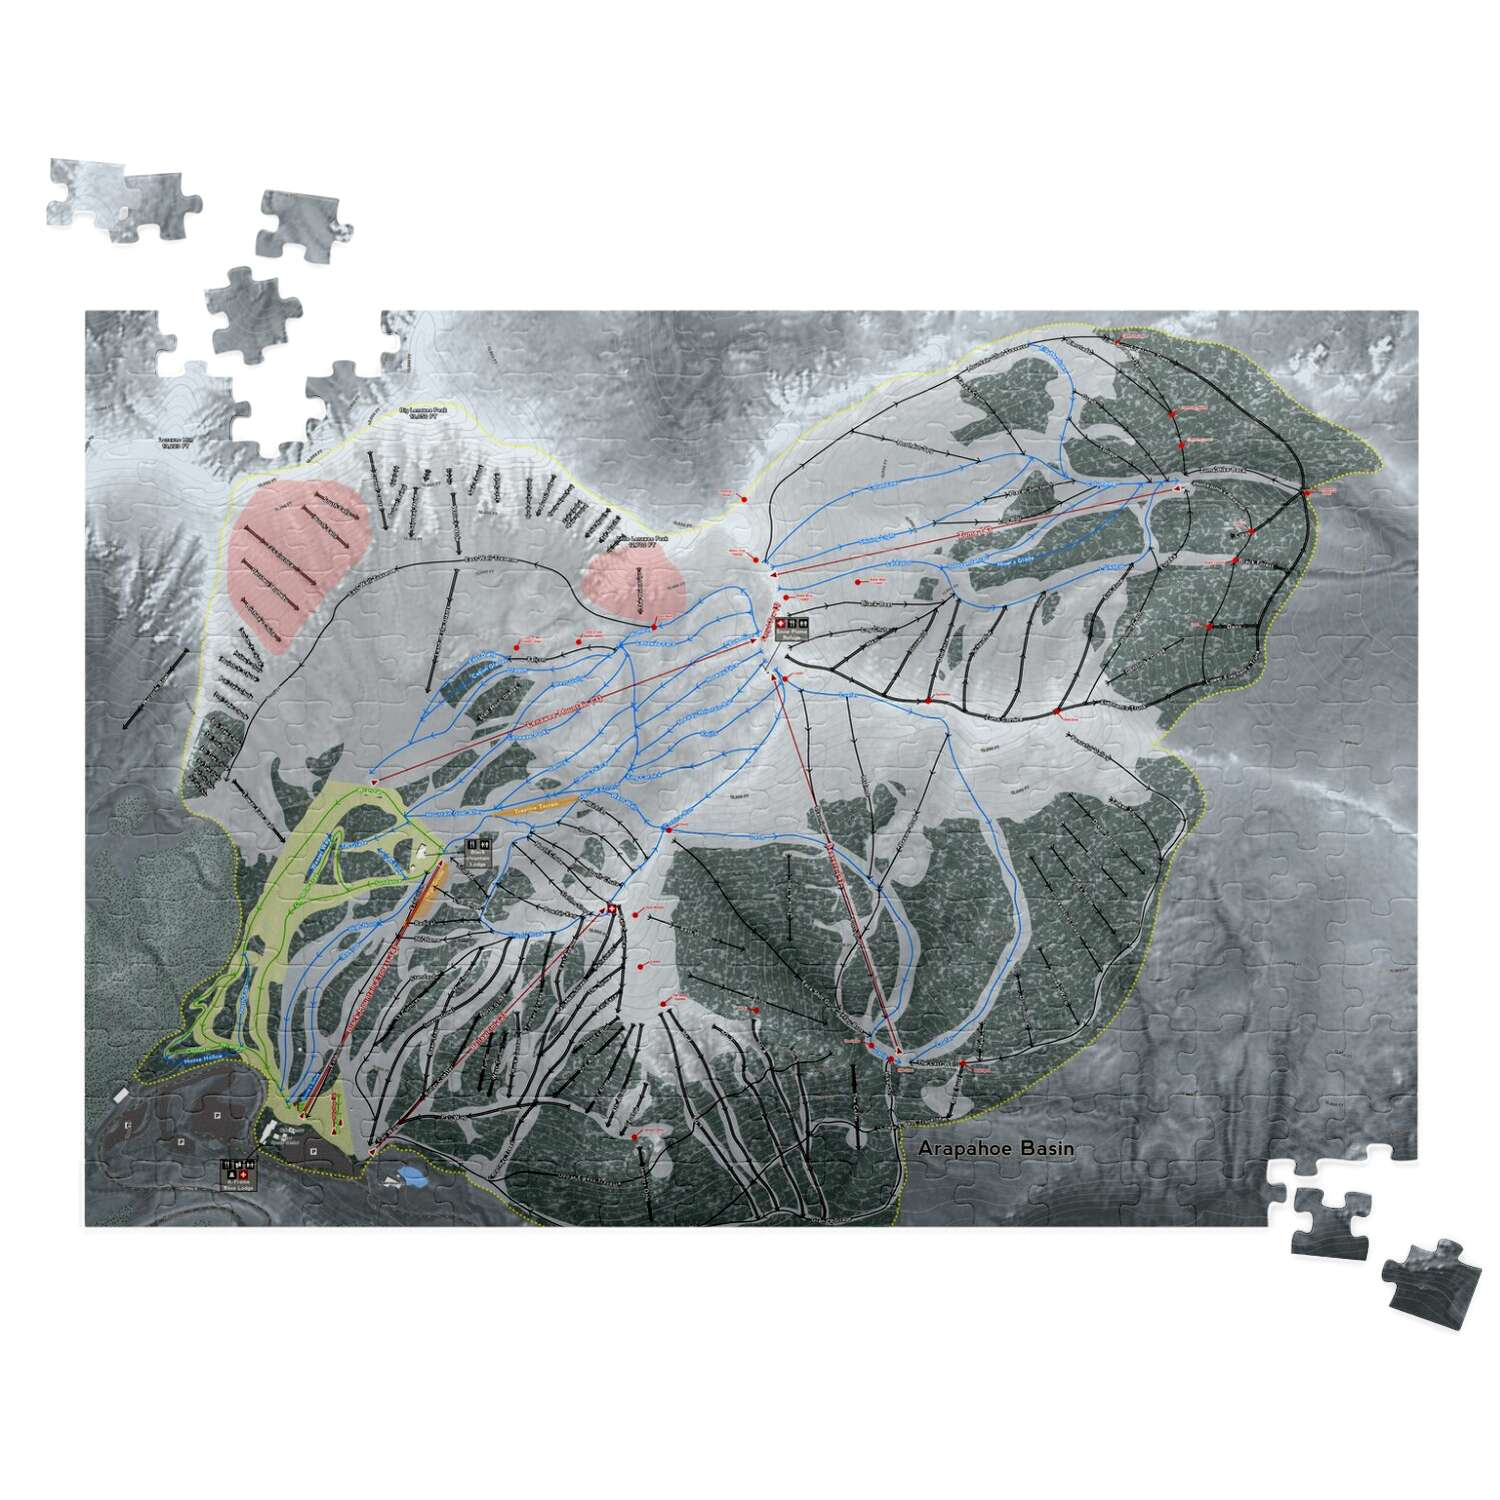 Arapahoe Basin, Colorado Ski Resort Map Puzzles